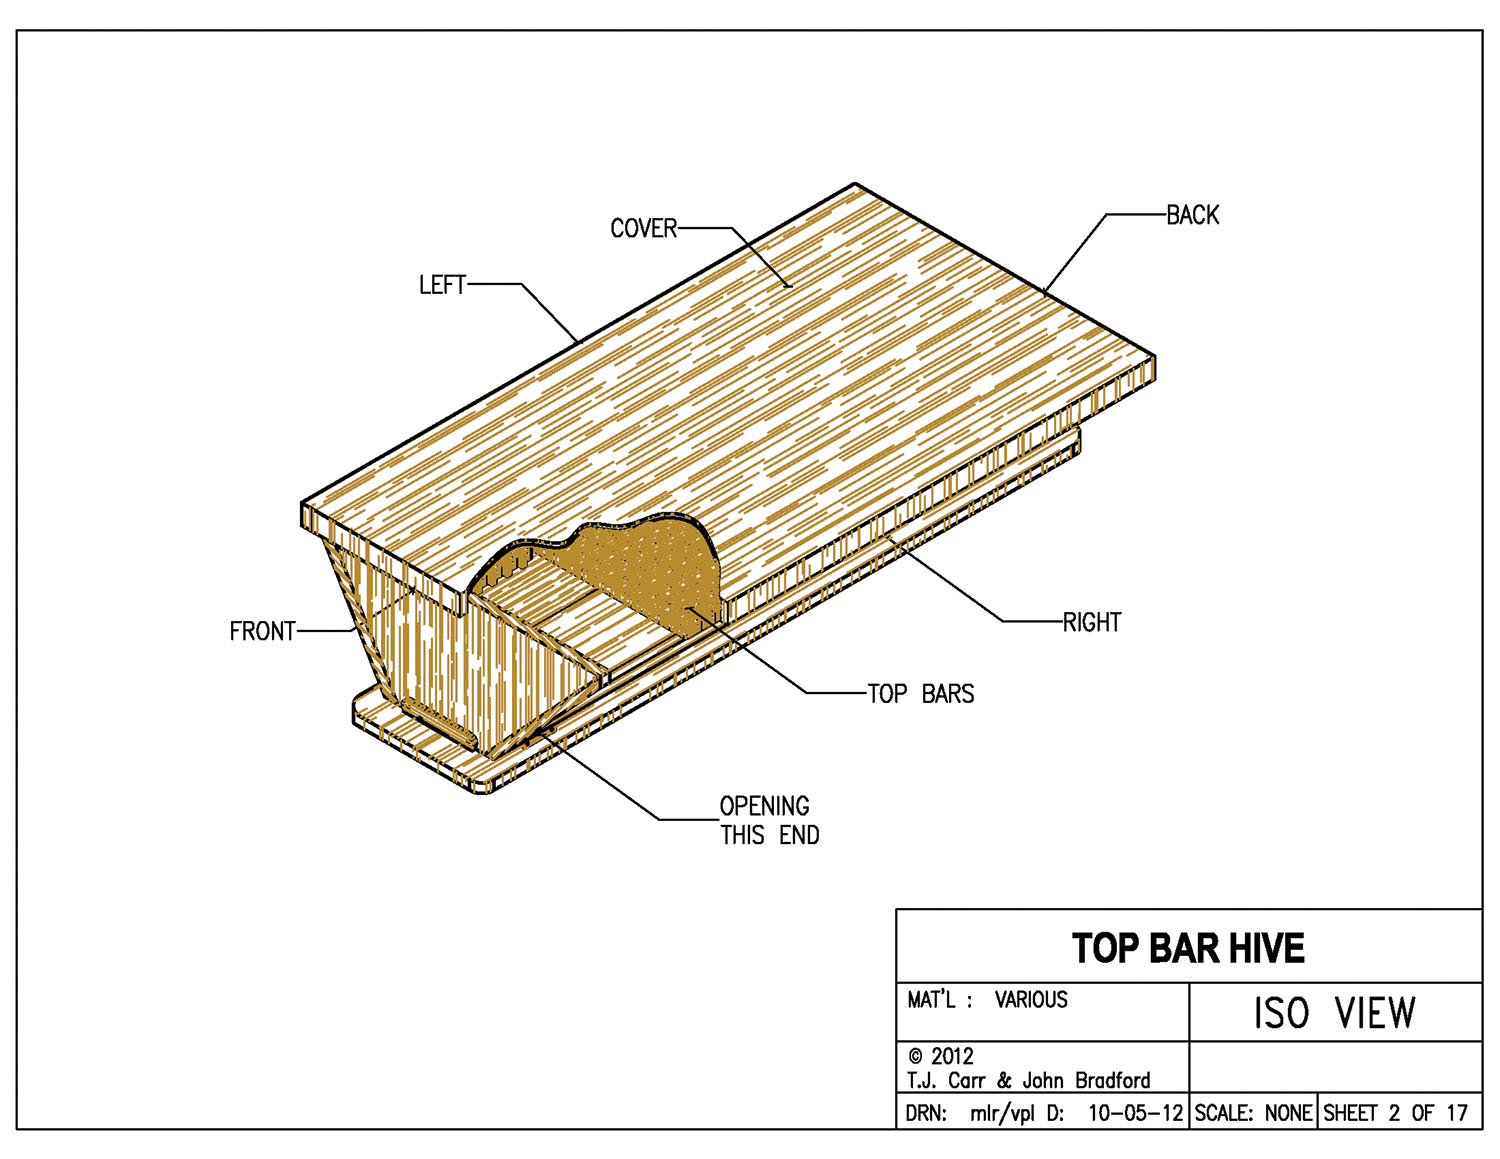 Hives Should Provide A Cavity Shape And Volume That The Bees Find  Receptive, And Top Bar Hives With Dimensions Approximately The Same As Ours  Have Been ...